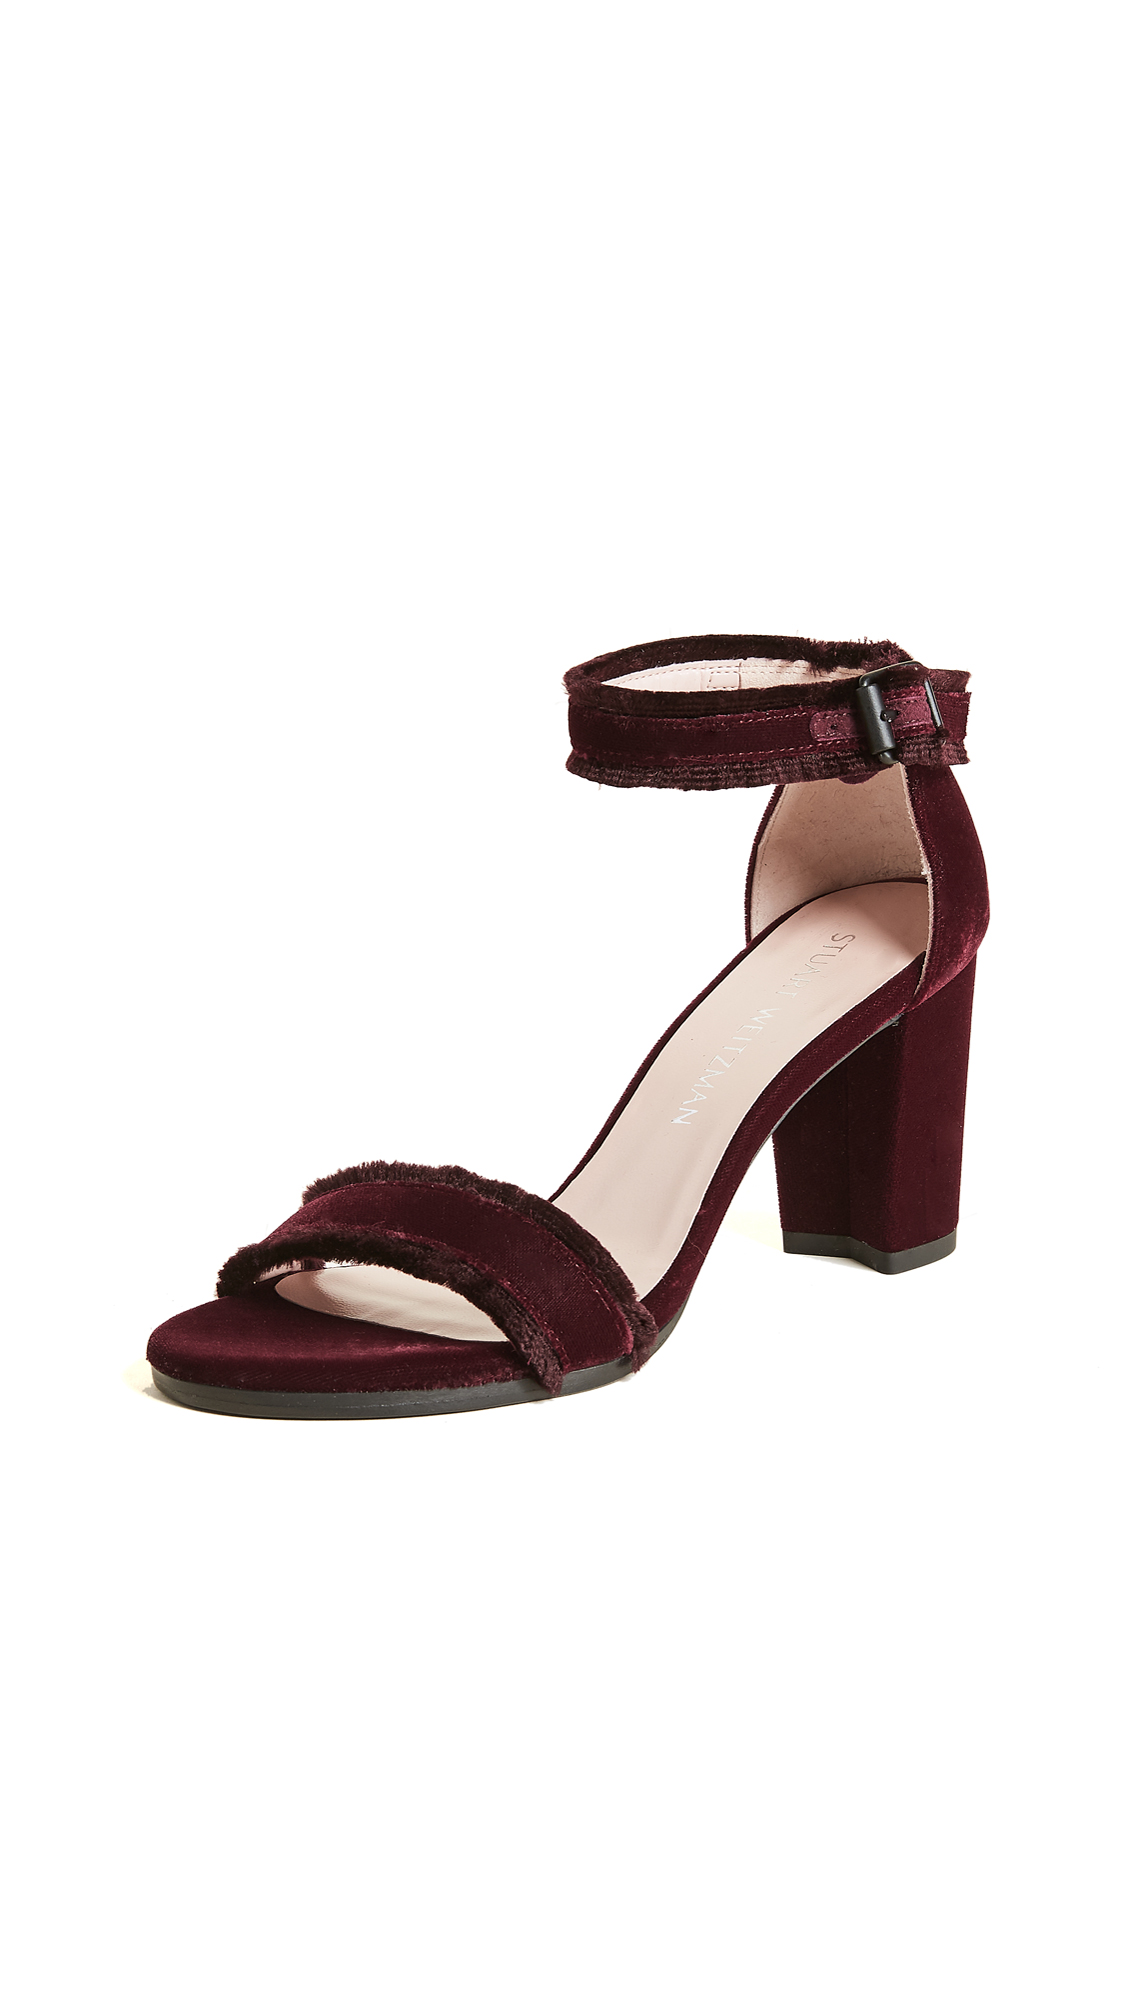 Stuart Weitzman Frayed Sandals - Bordeaux